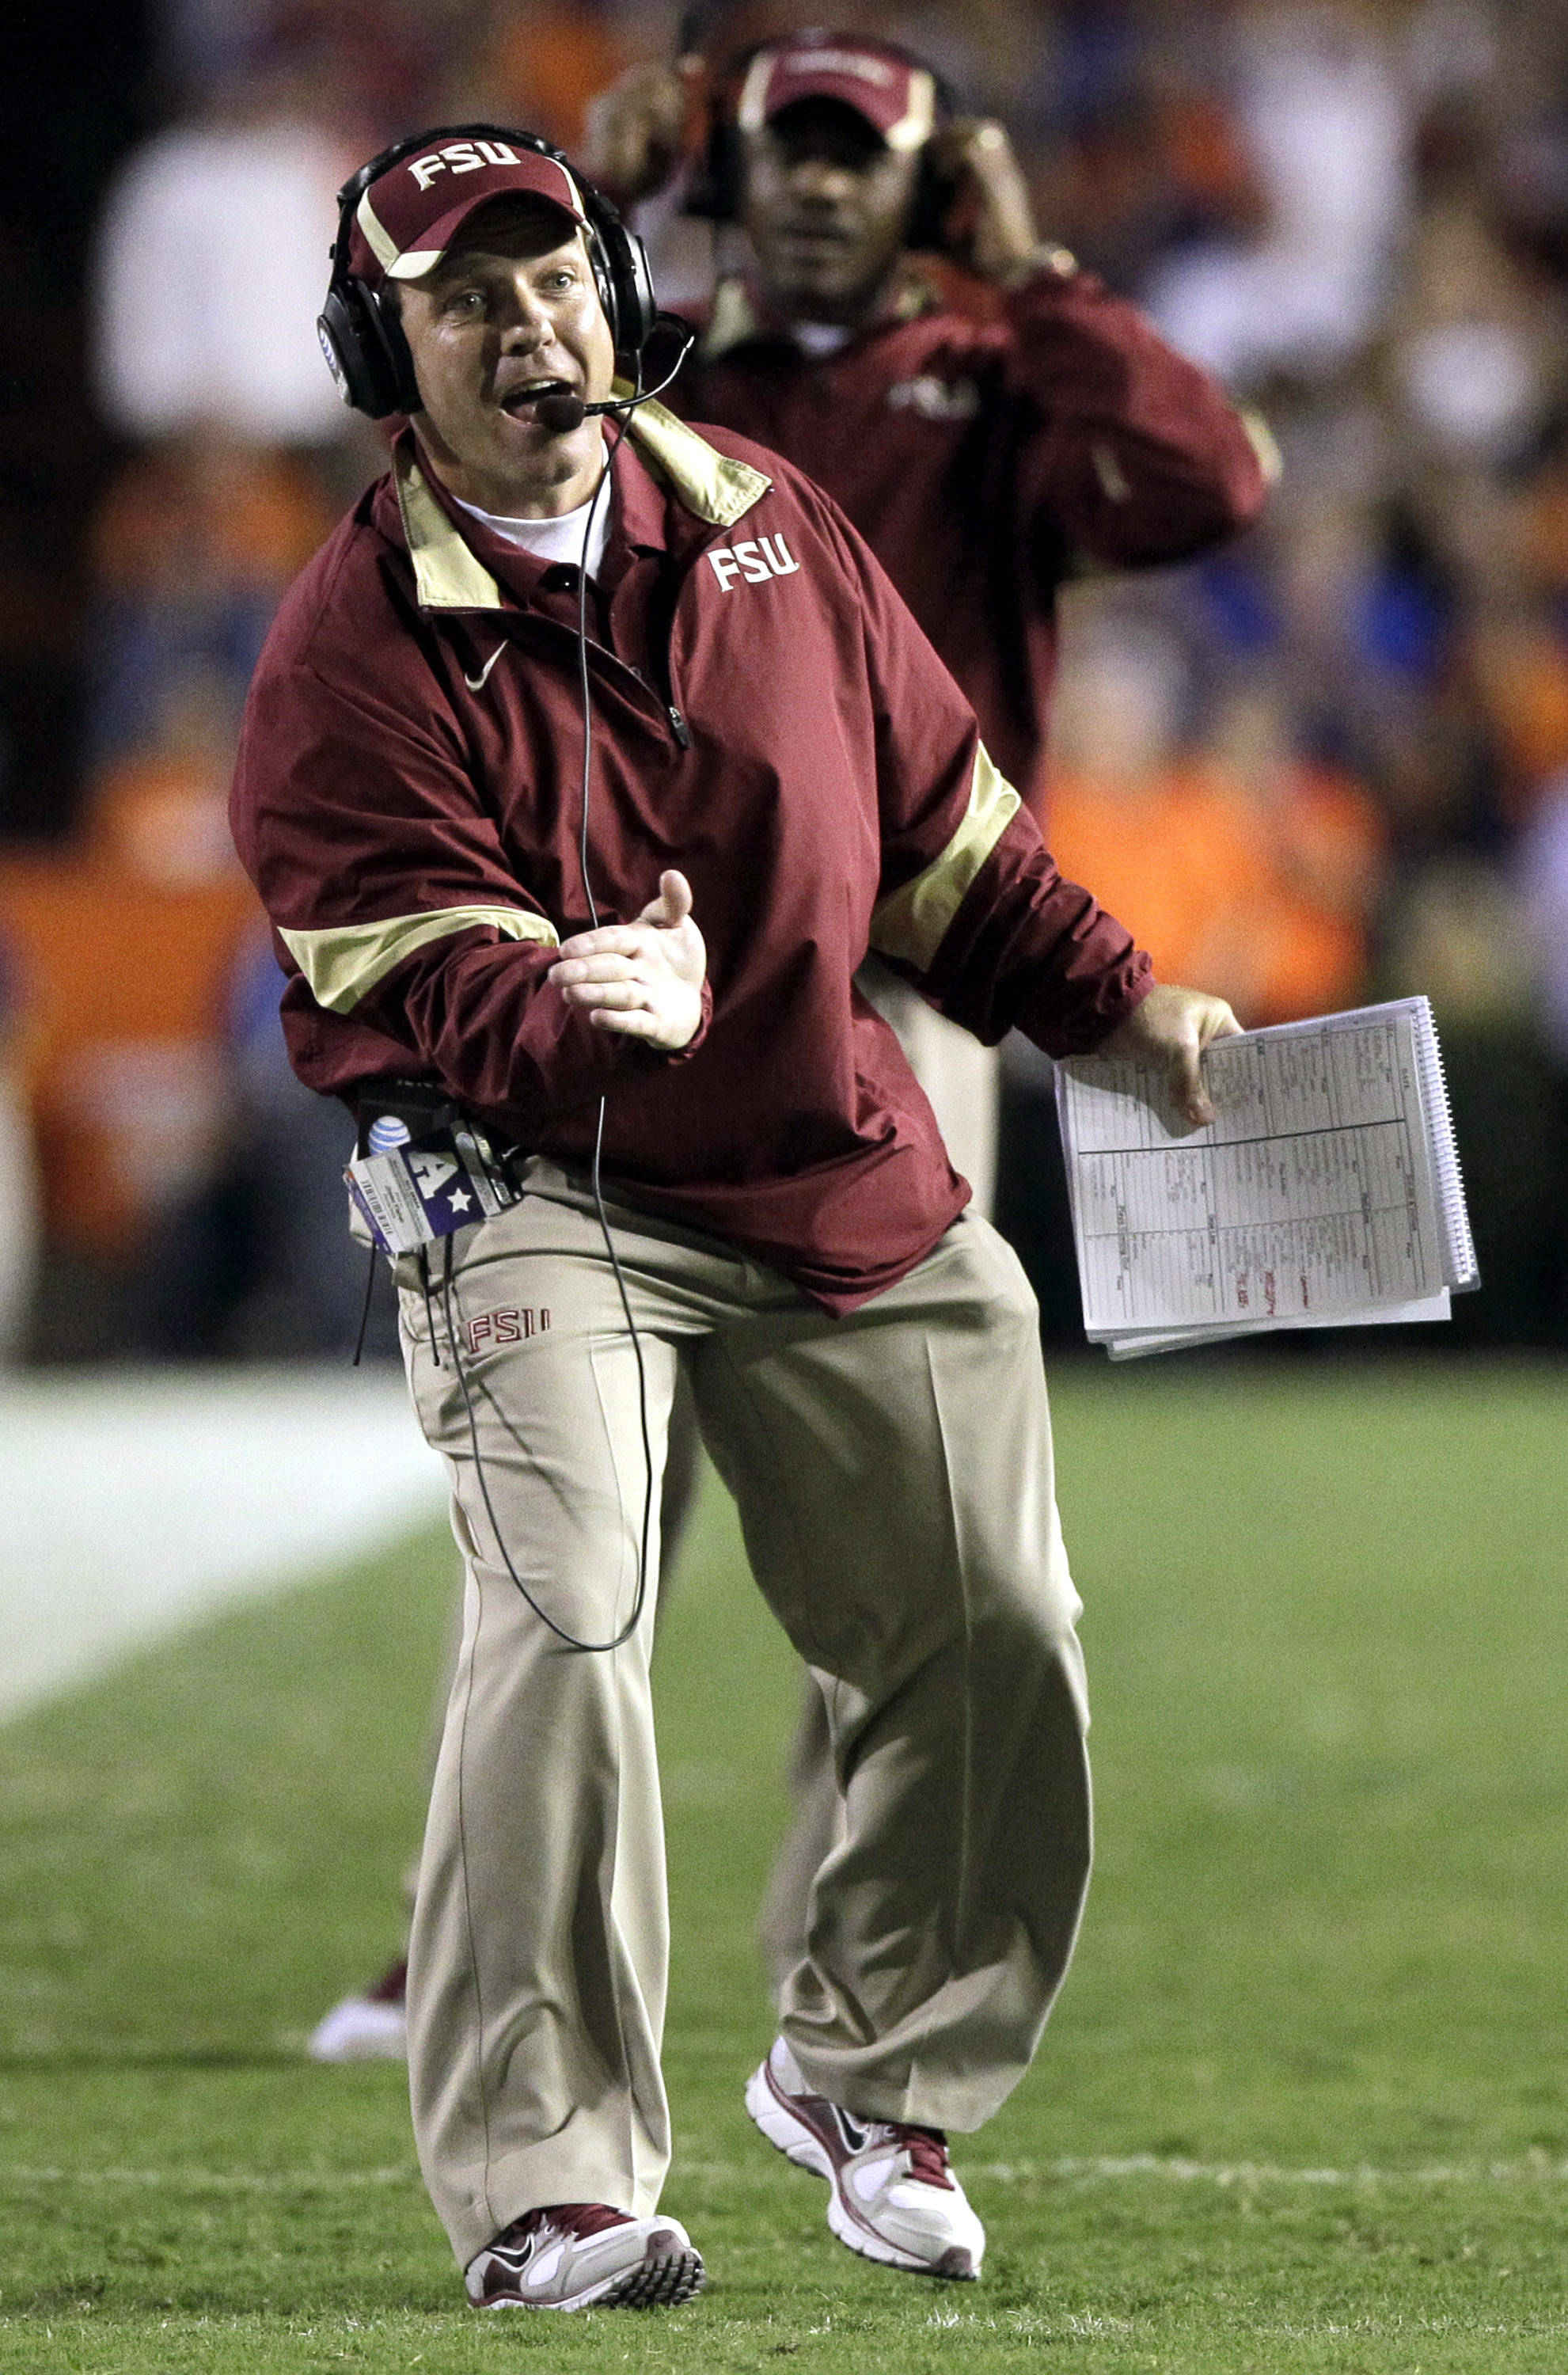 Florida State head coach Jimbo Fisher yells to his players on the field during the first half of an NCAA college football game against Florida, Saturday, Nov. 26, 2011, in Gainesville, Fla. (AP Photo/John Raoux)